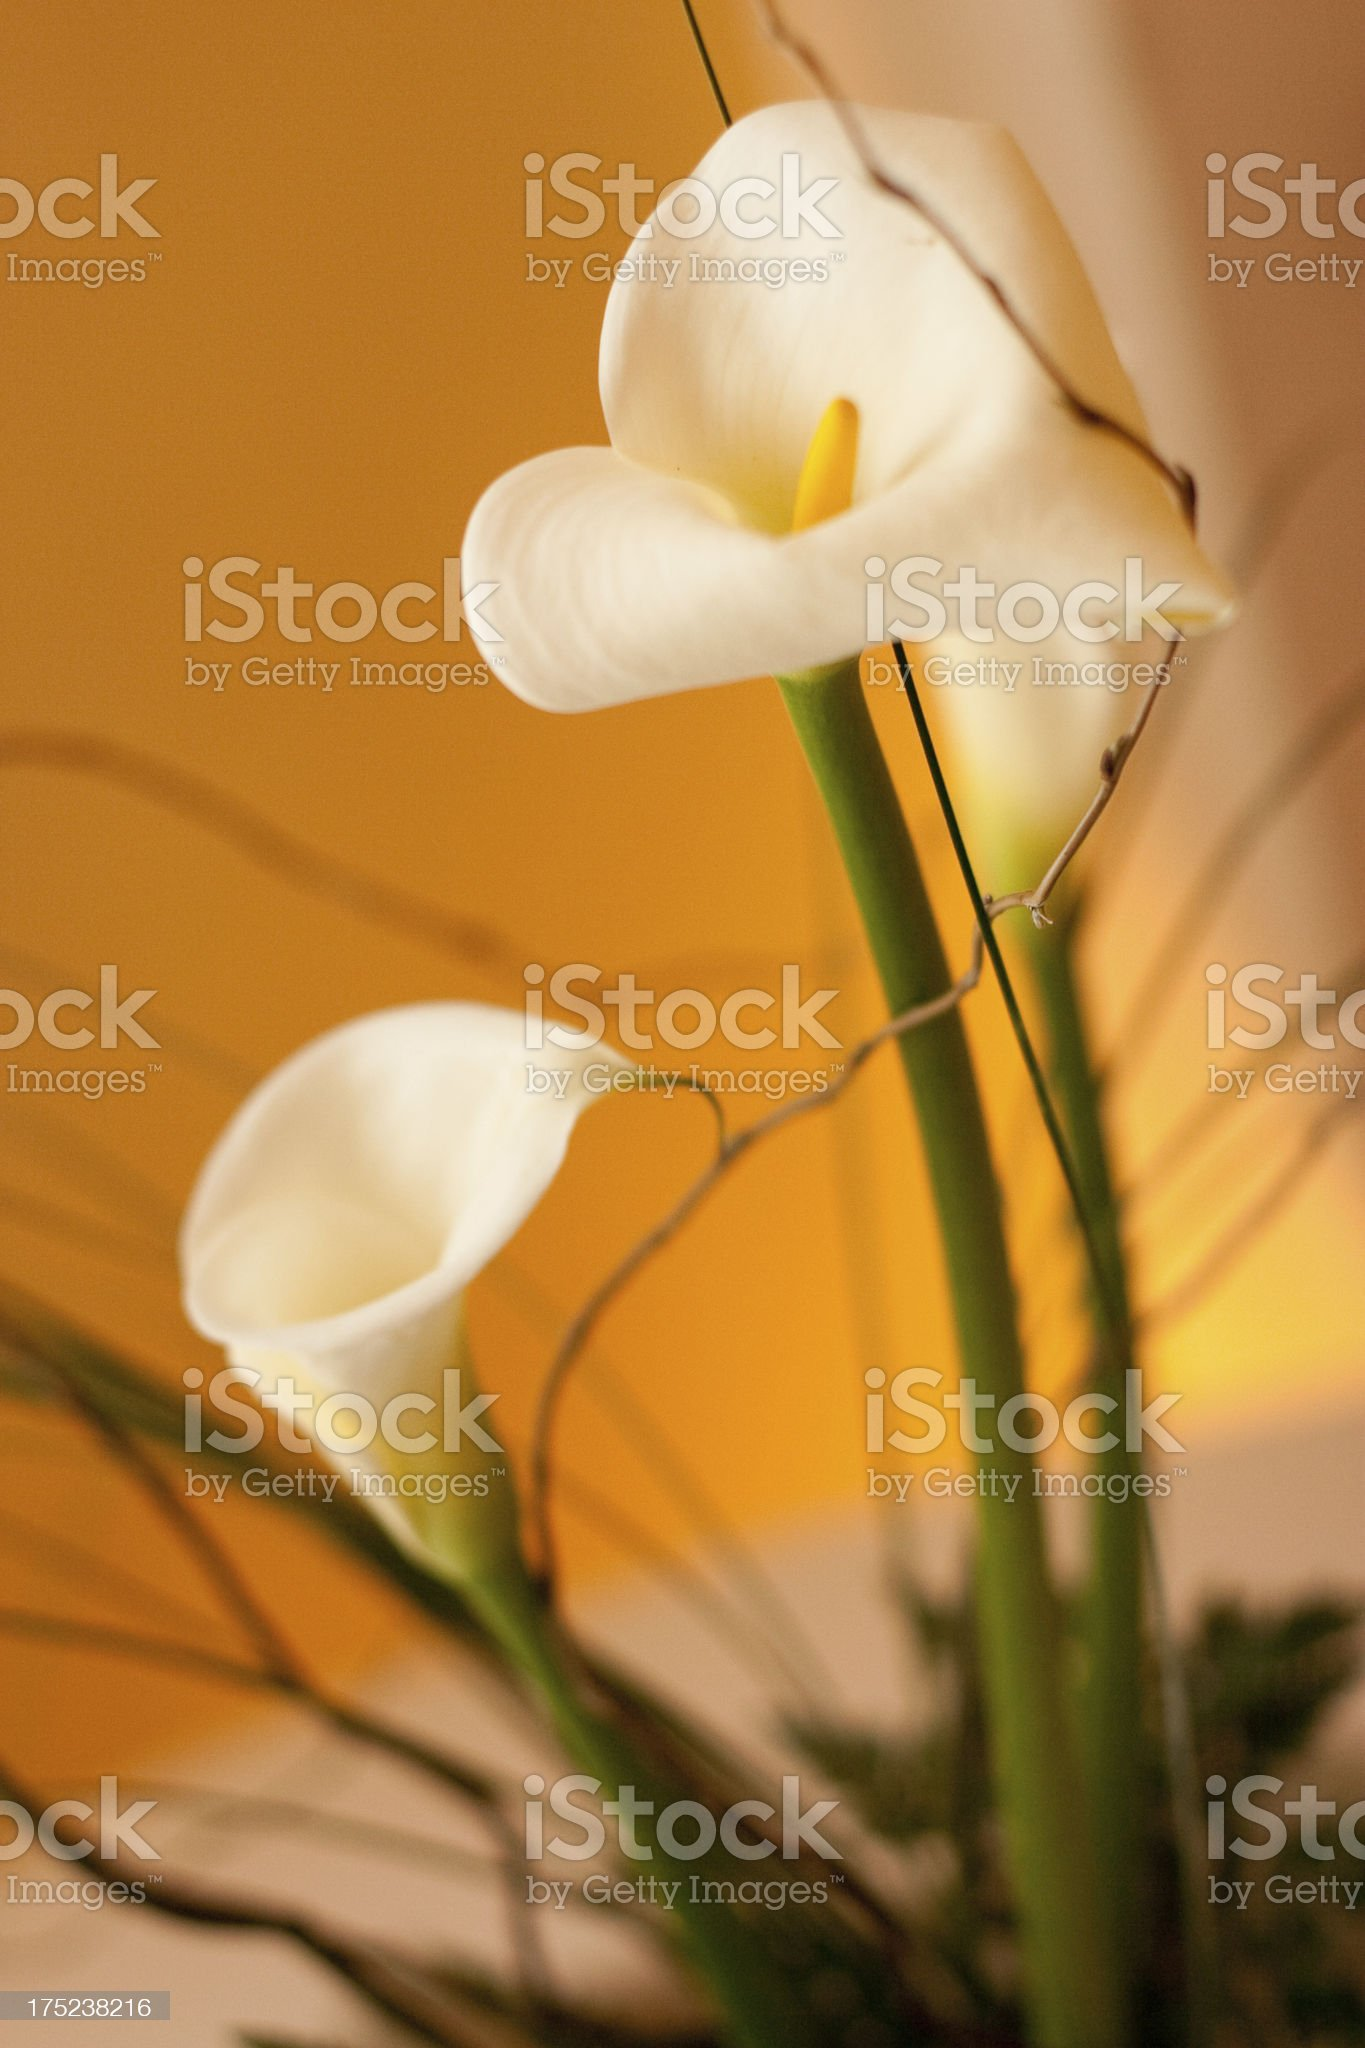 Tranquil Calla Lily Floral Arrangement royalty-free stock photo